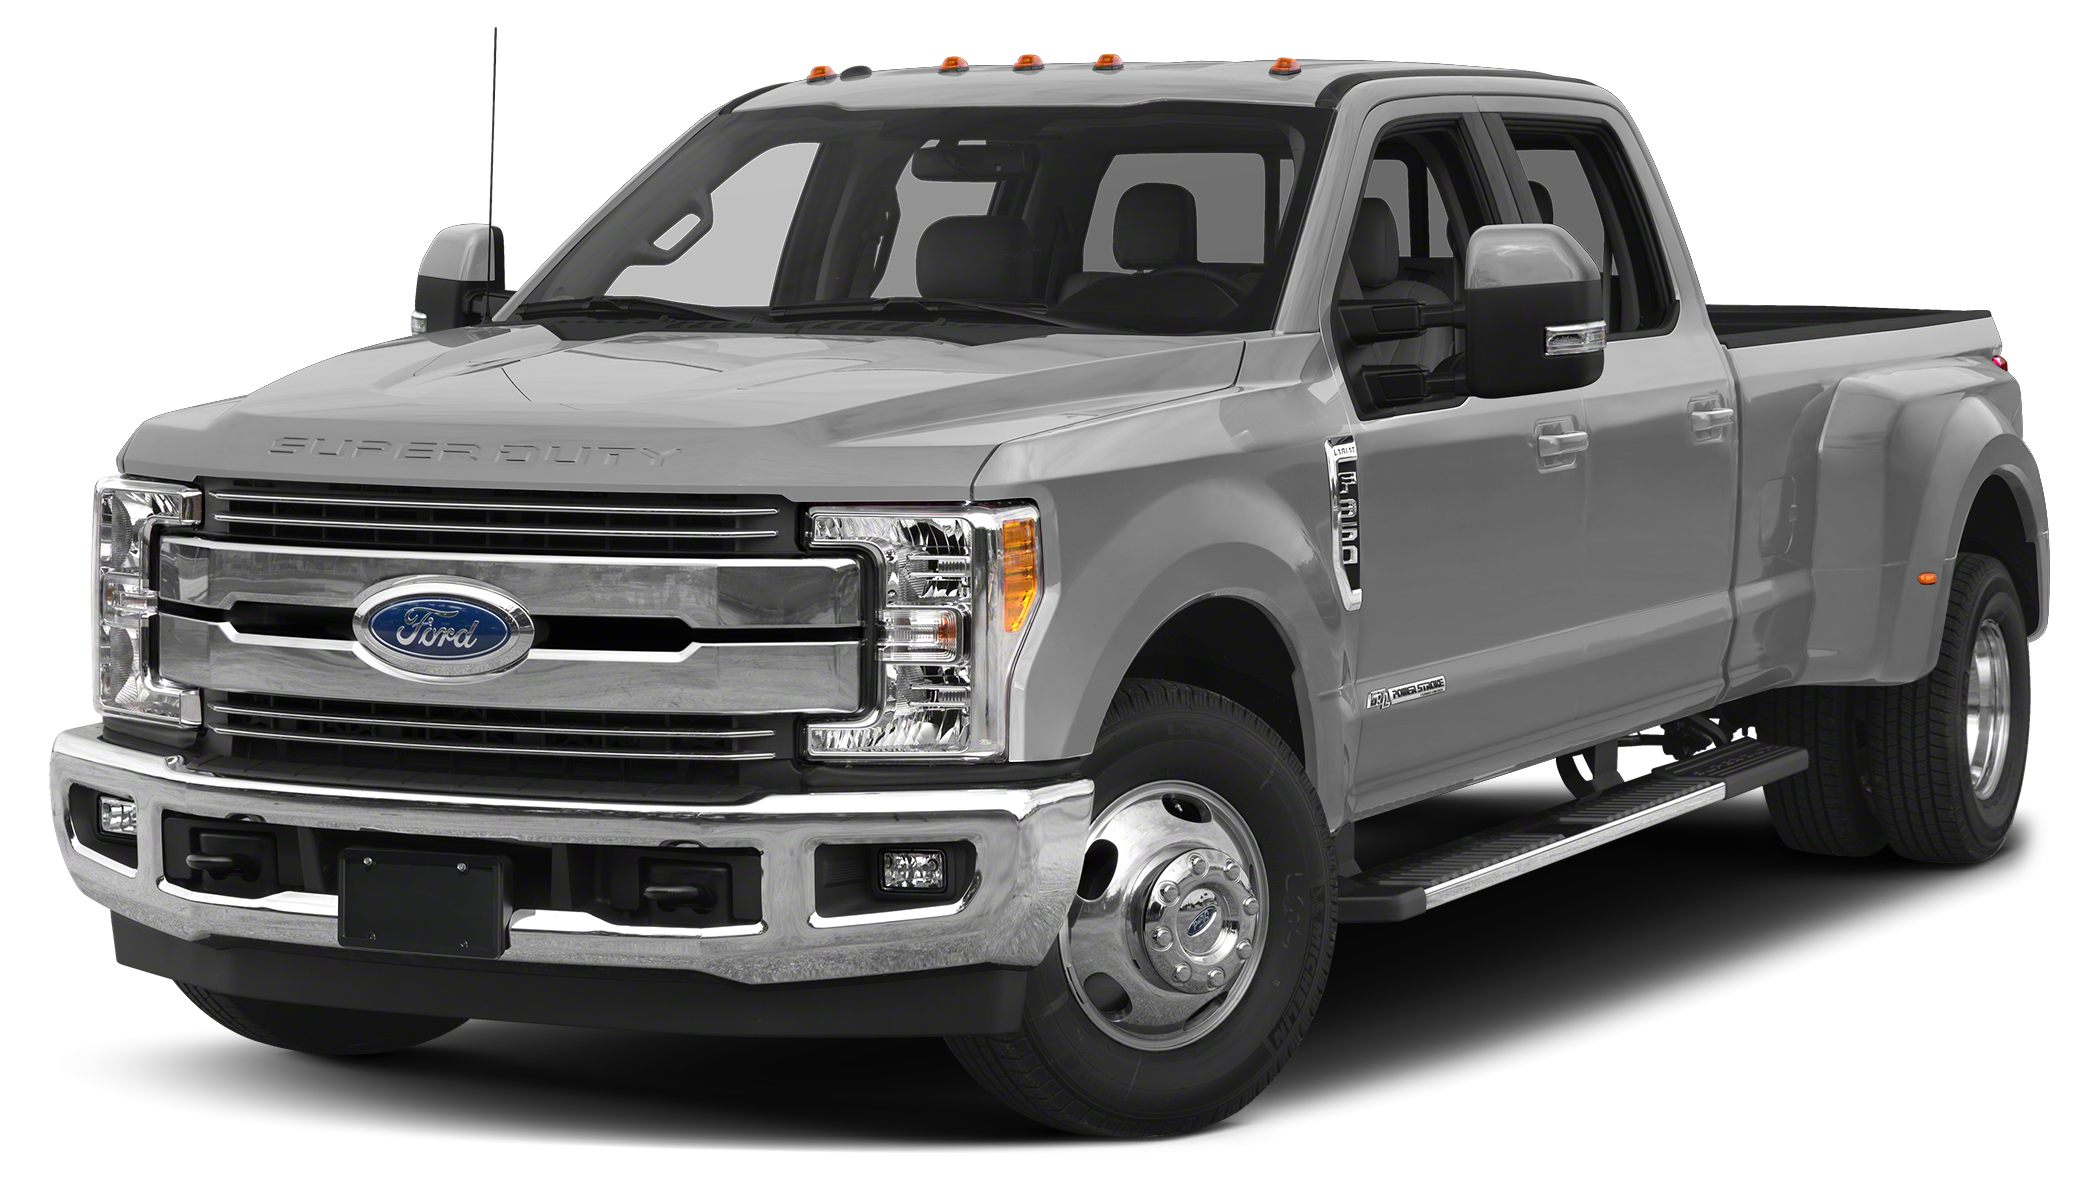 2017 Ford F-450 Lariat  Holiday Auto Group backs our price with a LOW PRICE GUARANTEE and i